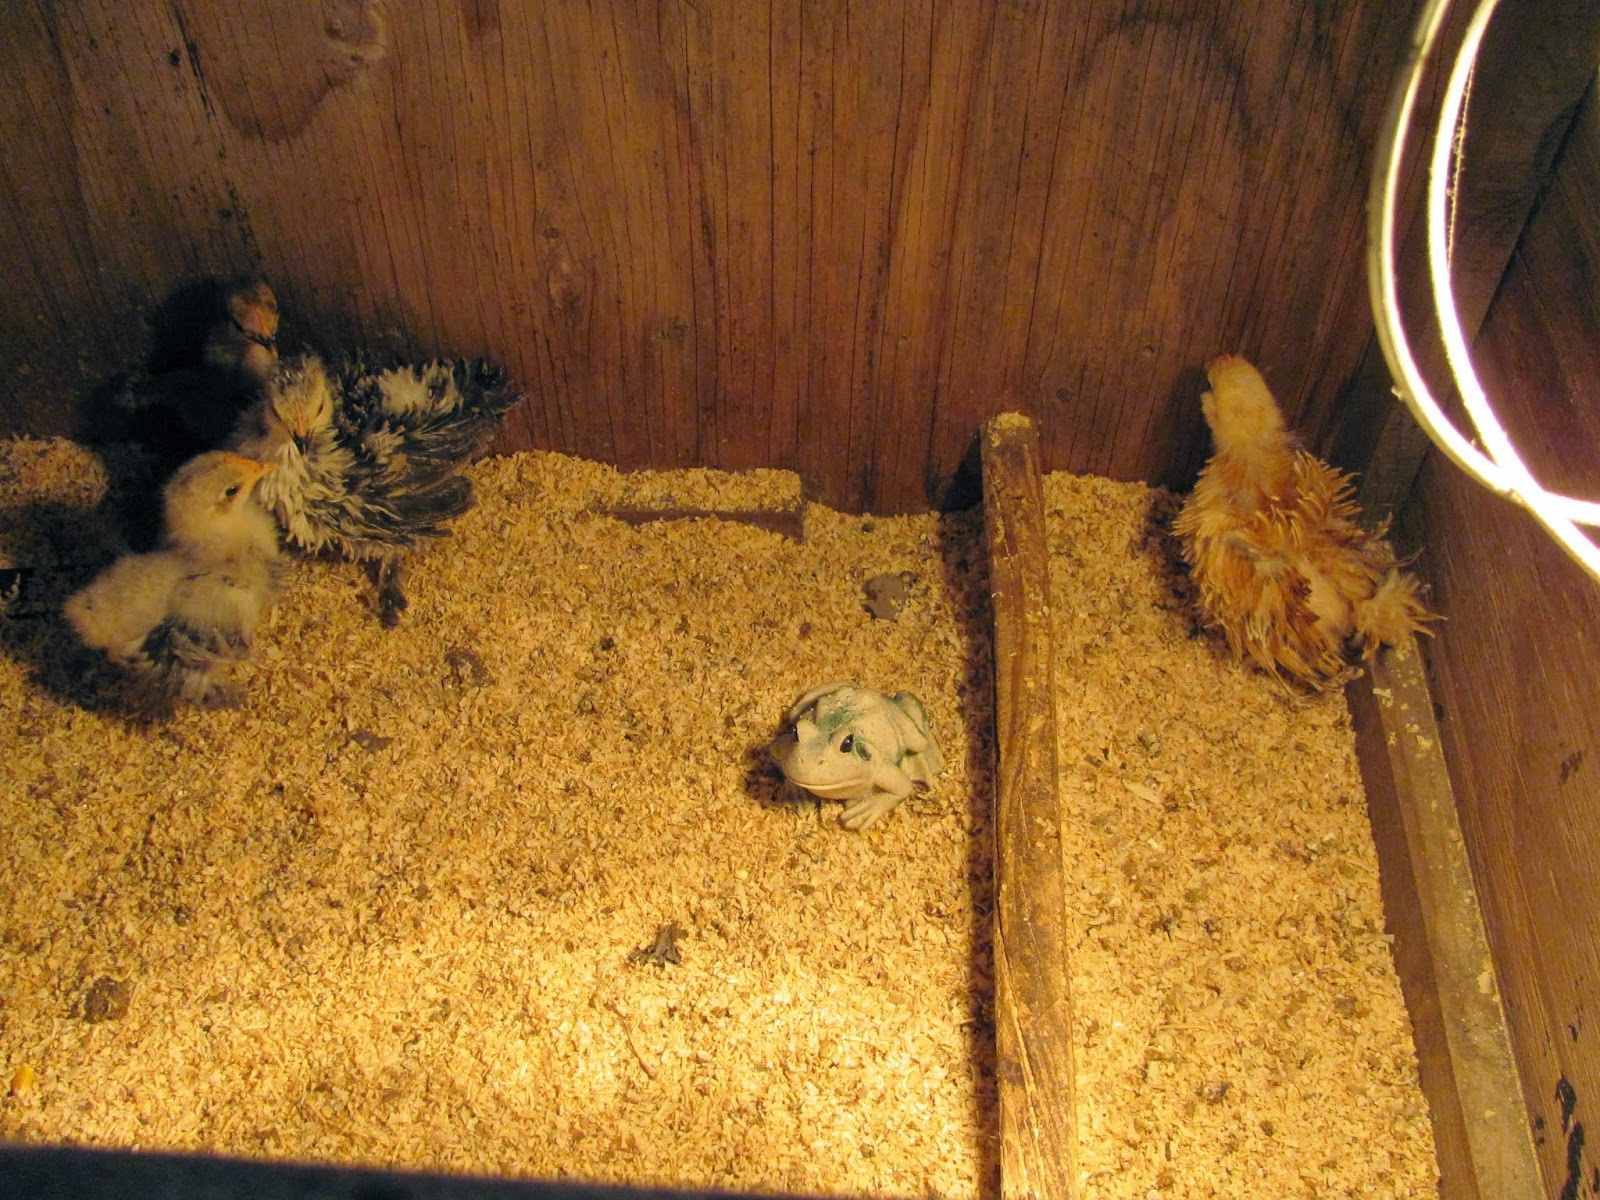 Frog in an incubator with young chicks at our family's house in Spokane, Washington